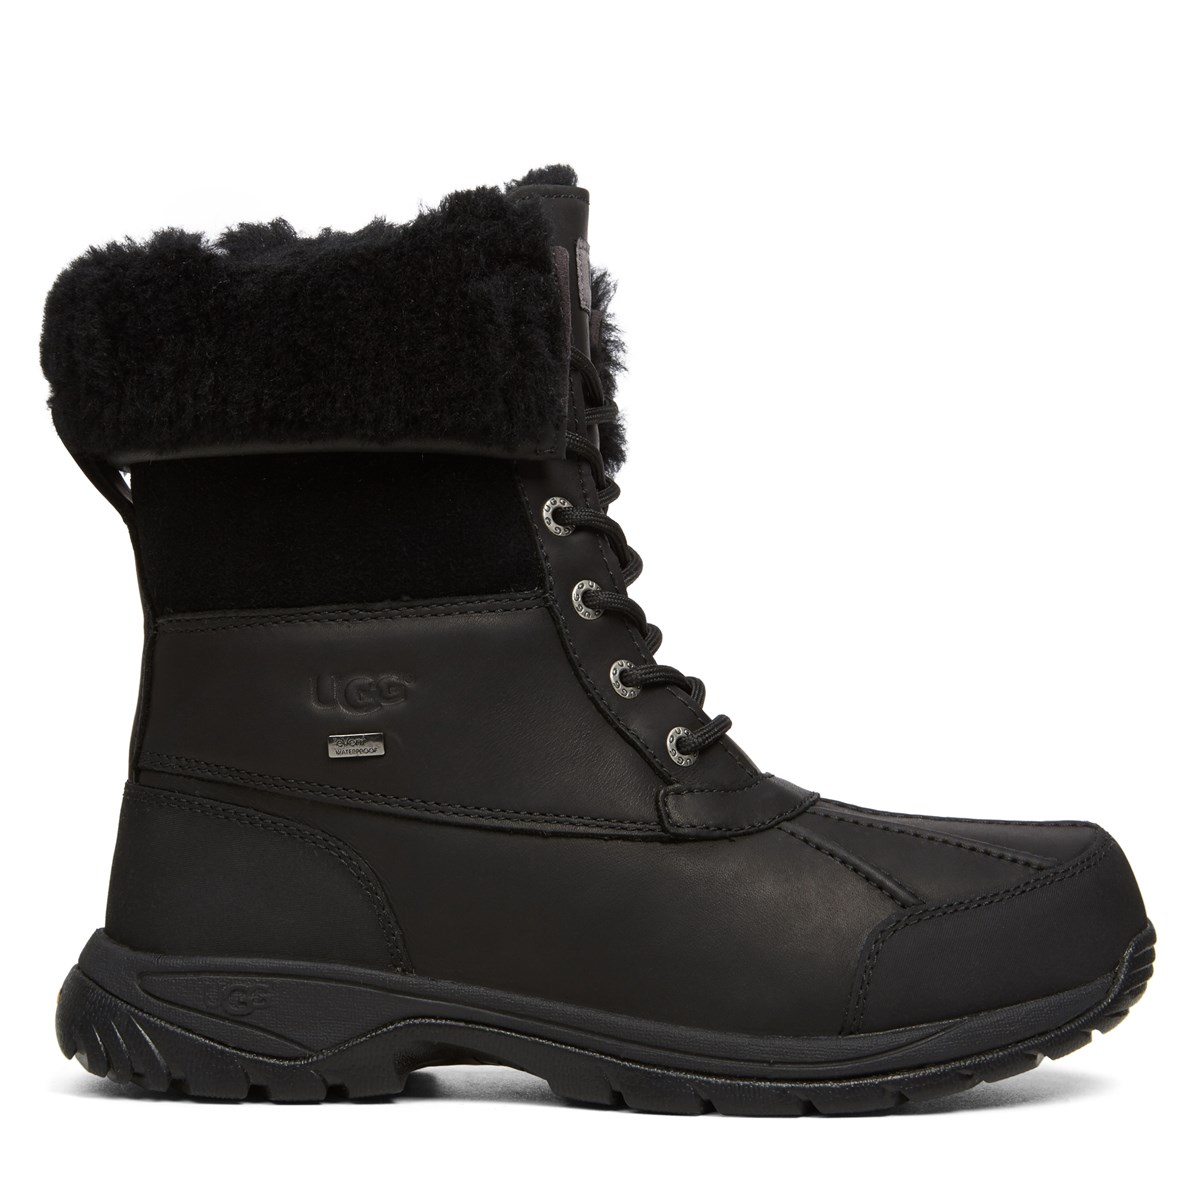 Men's 5521 Butte Boots in Black